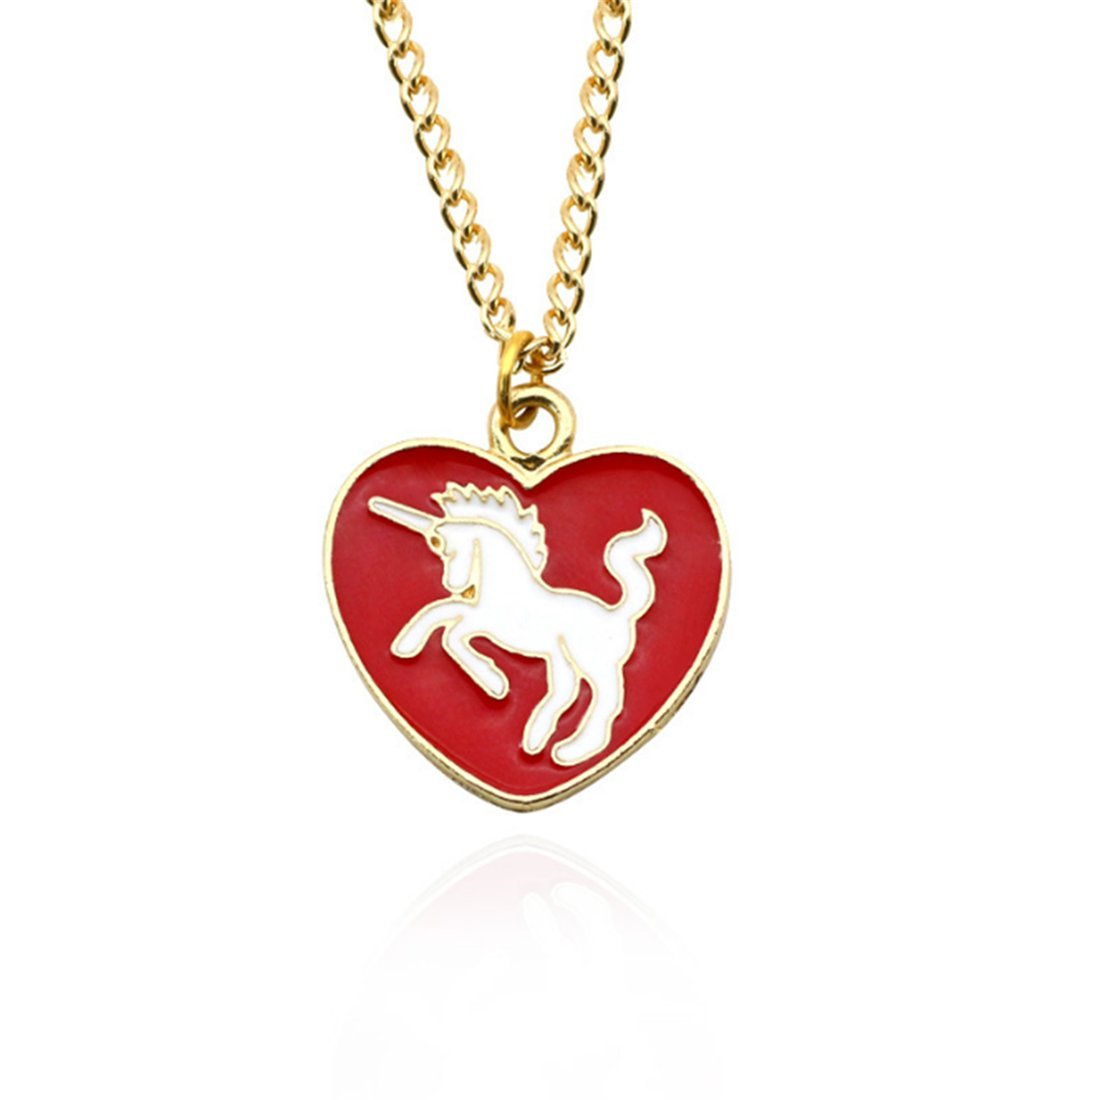 VWH Women Girls Alloy Necklace Unicorn Pendant Clavicle Bone Chain Necklace Jewelry Gift